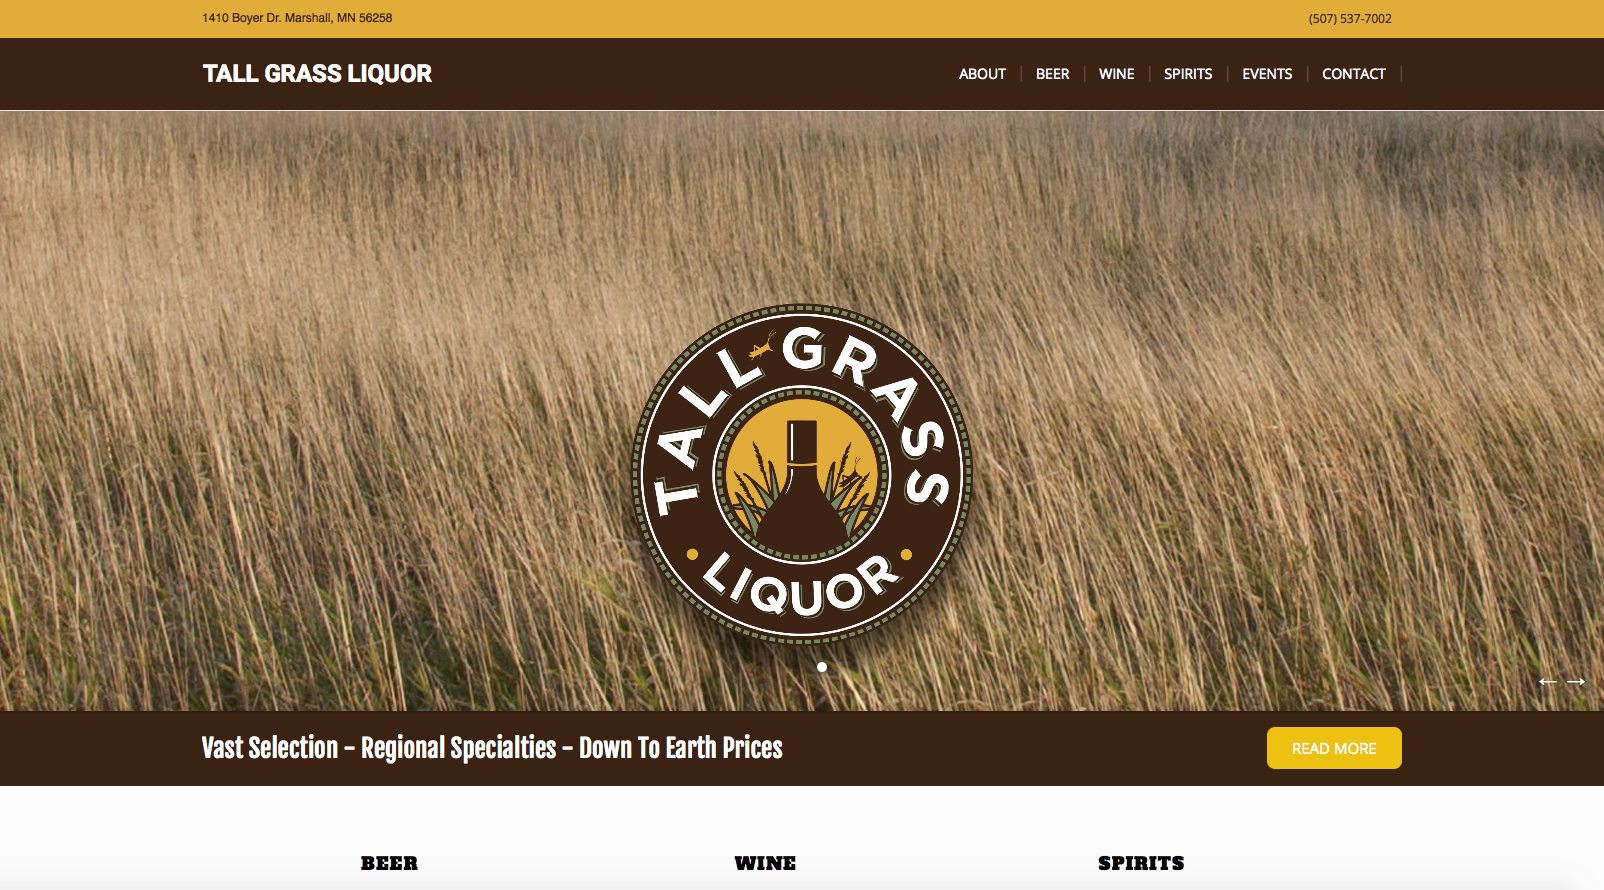 Tall Grass Liquor